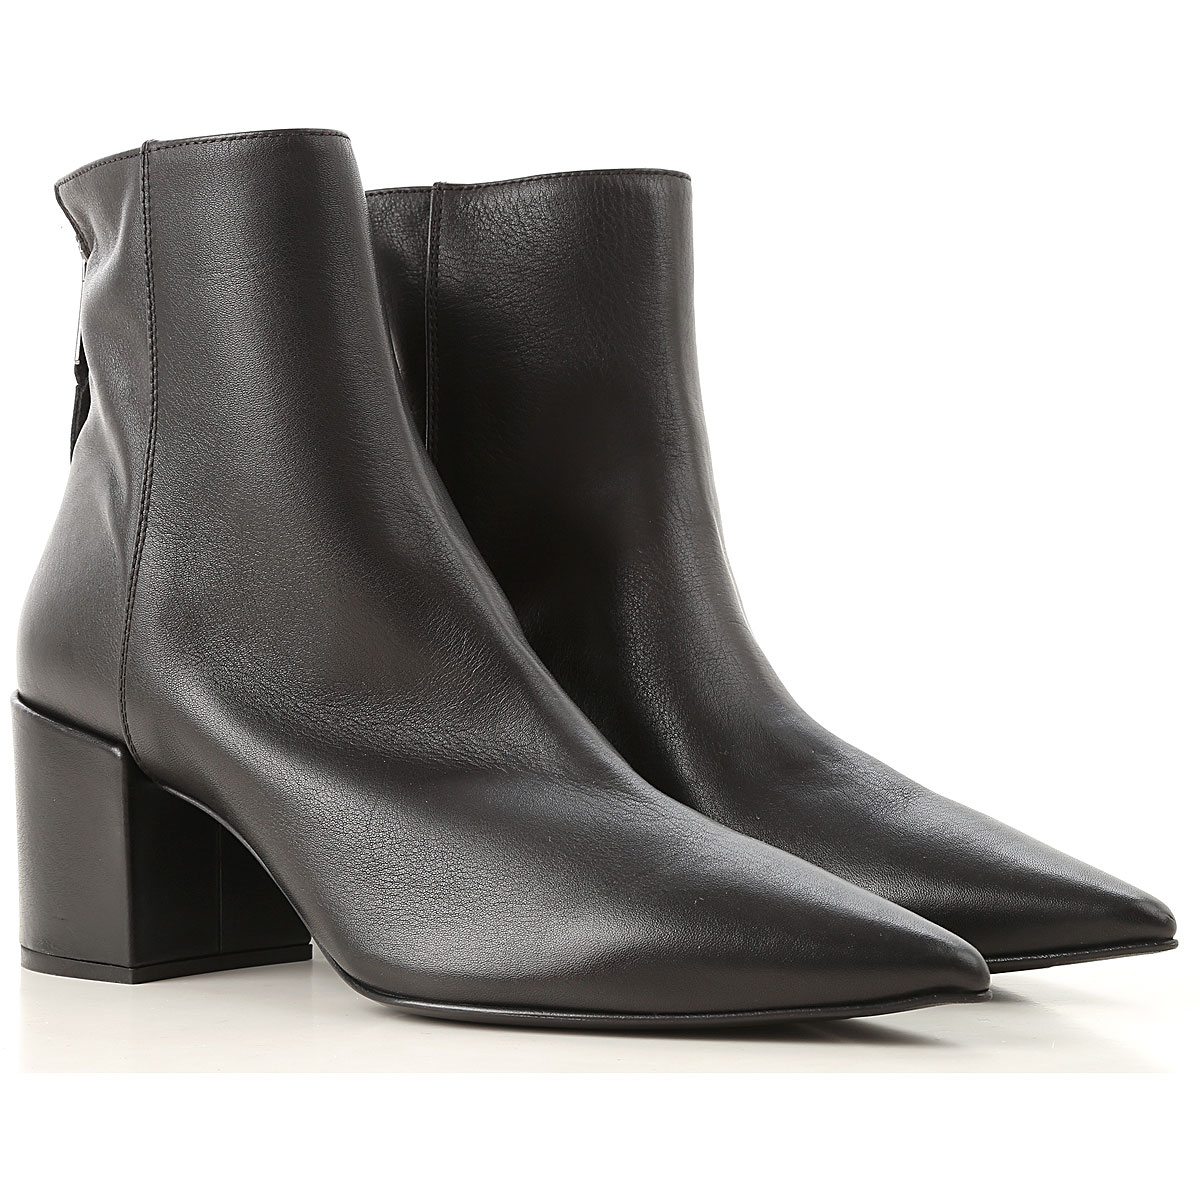 Image of Elena Iachi Boots for Women, Booties, Black, Leather, 2017, 10 6 7 8 9